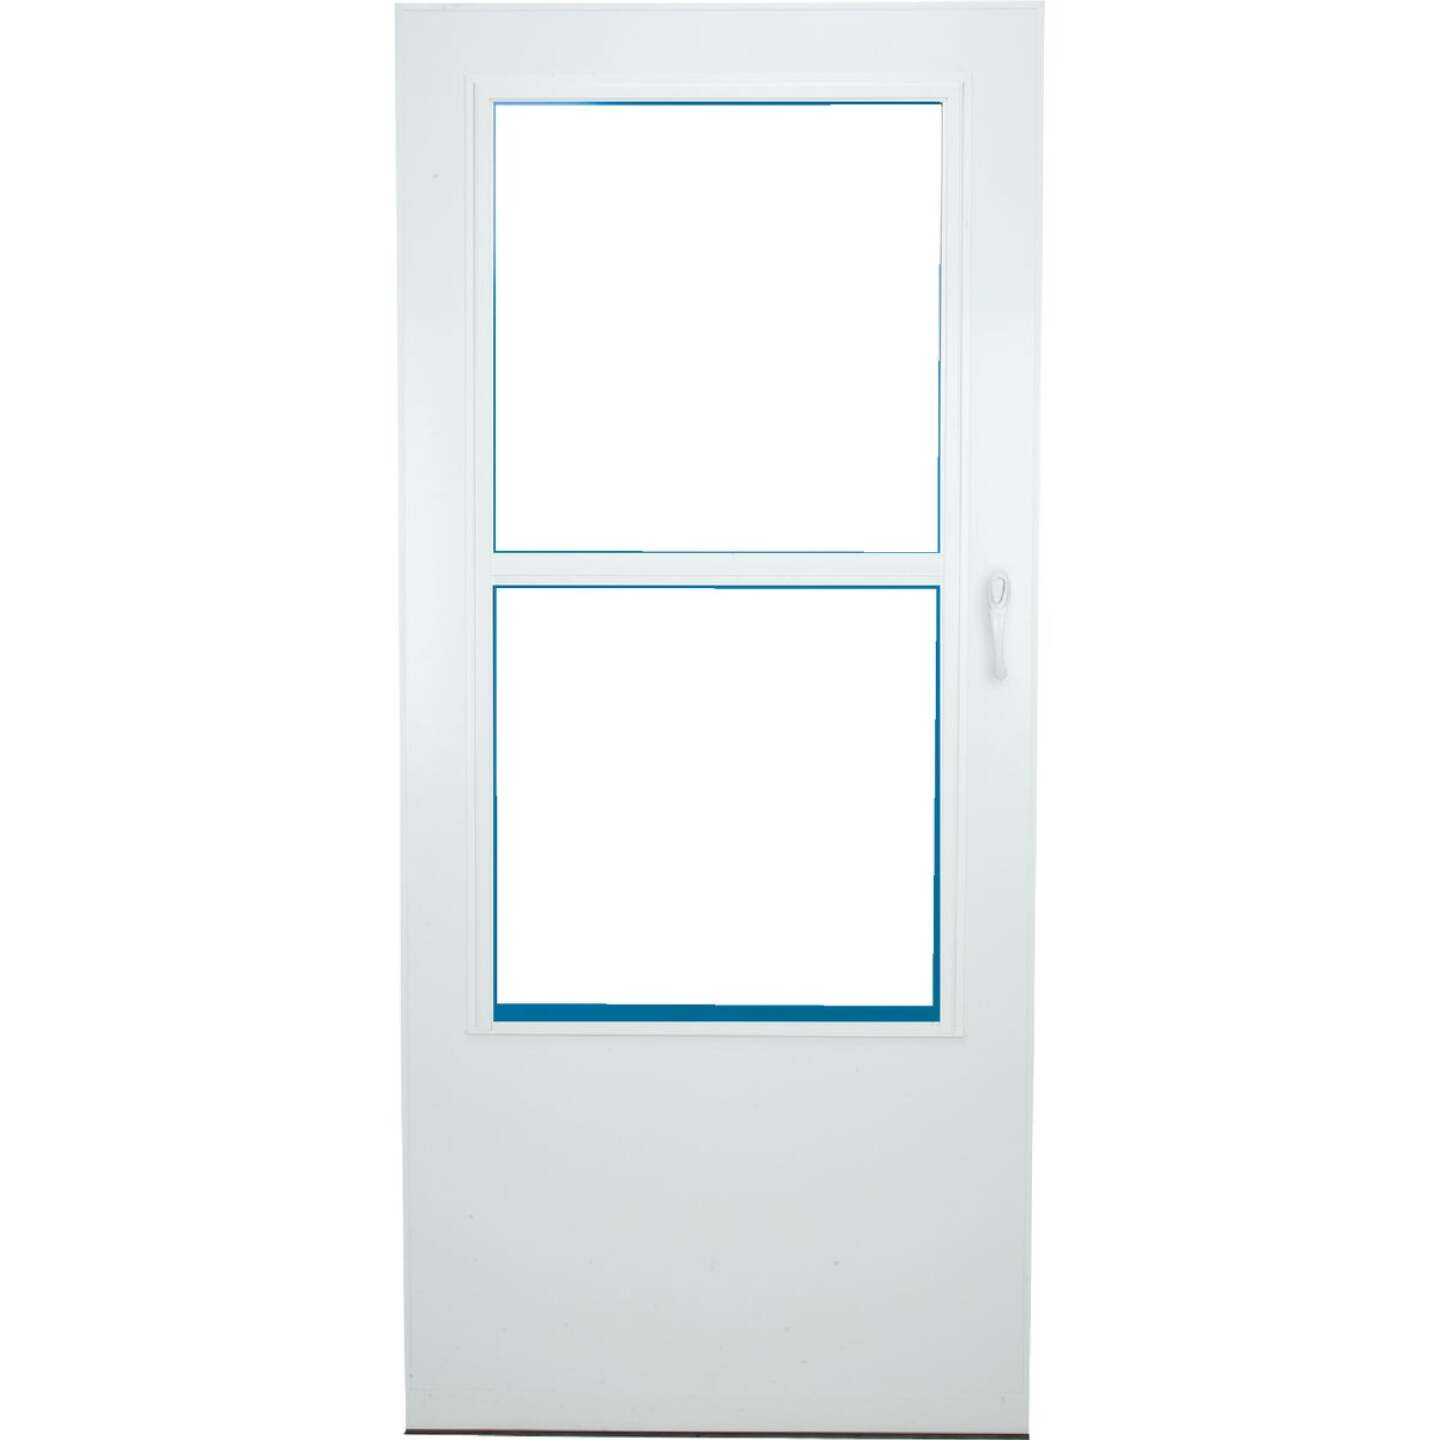 Larson Value-Core 36 In. W x 80 In. H x 1 In. Thick White Self-Storing Aluminum Storm Door Image 2